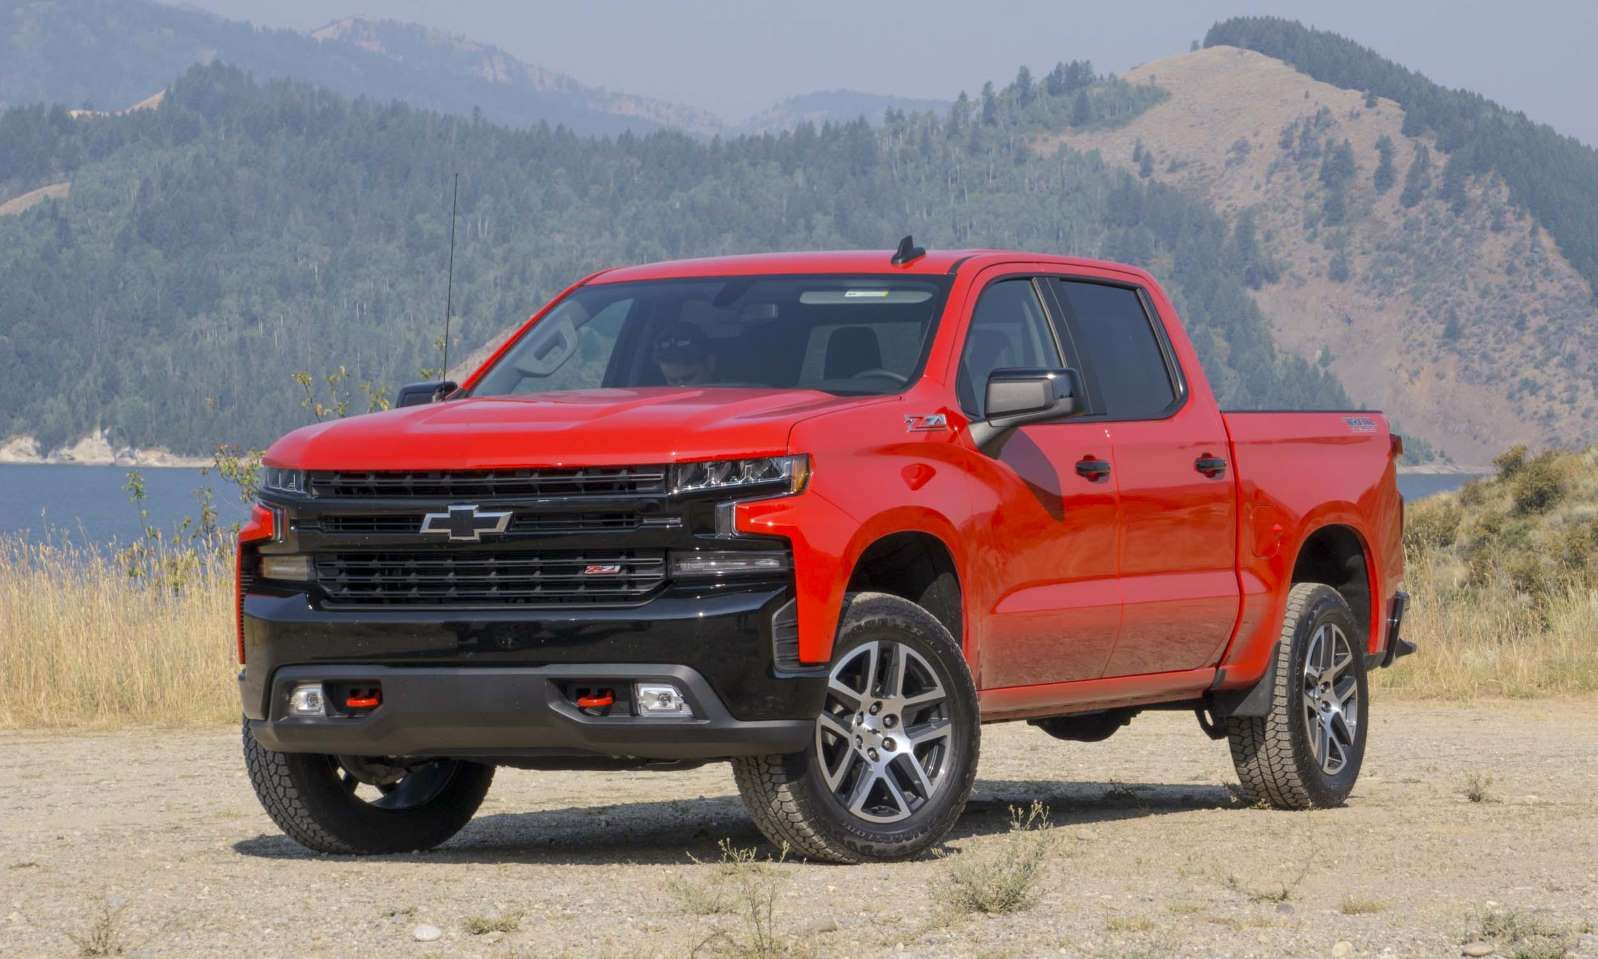 2019 Chevy Silverado A Red And Black Truck Parked In Front Of A